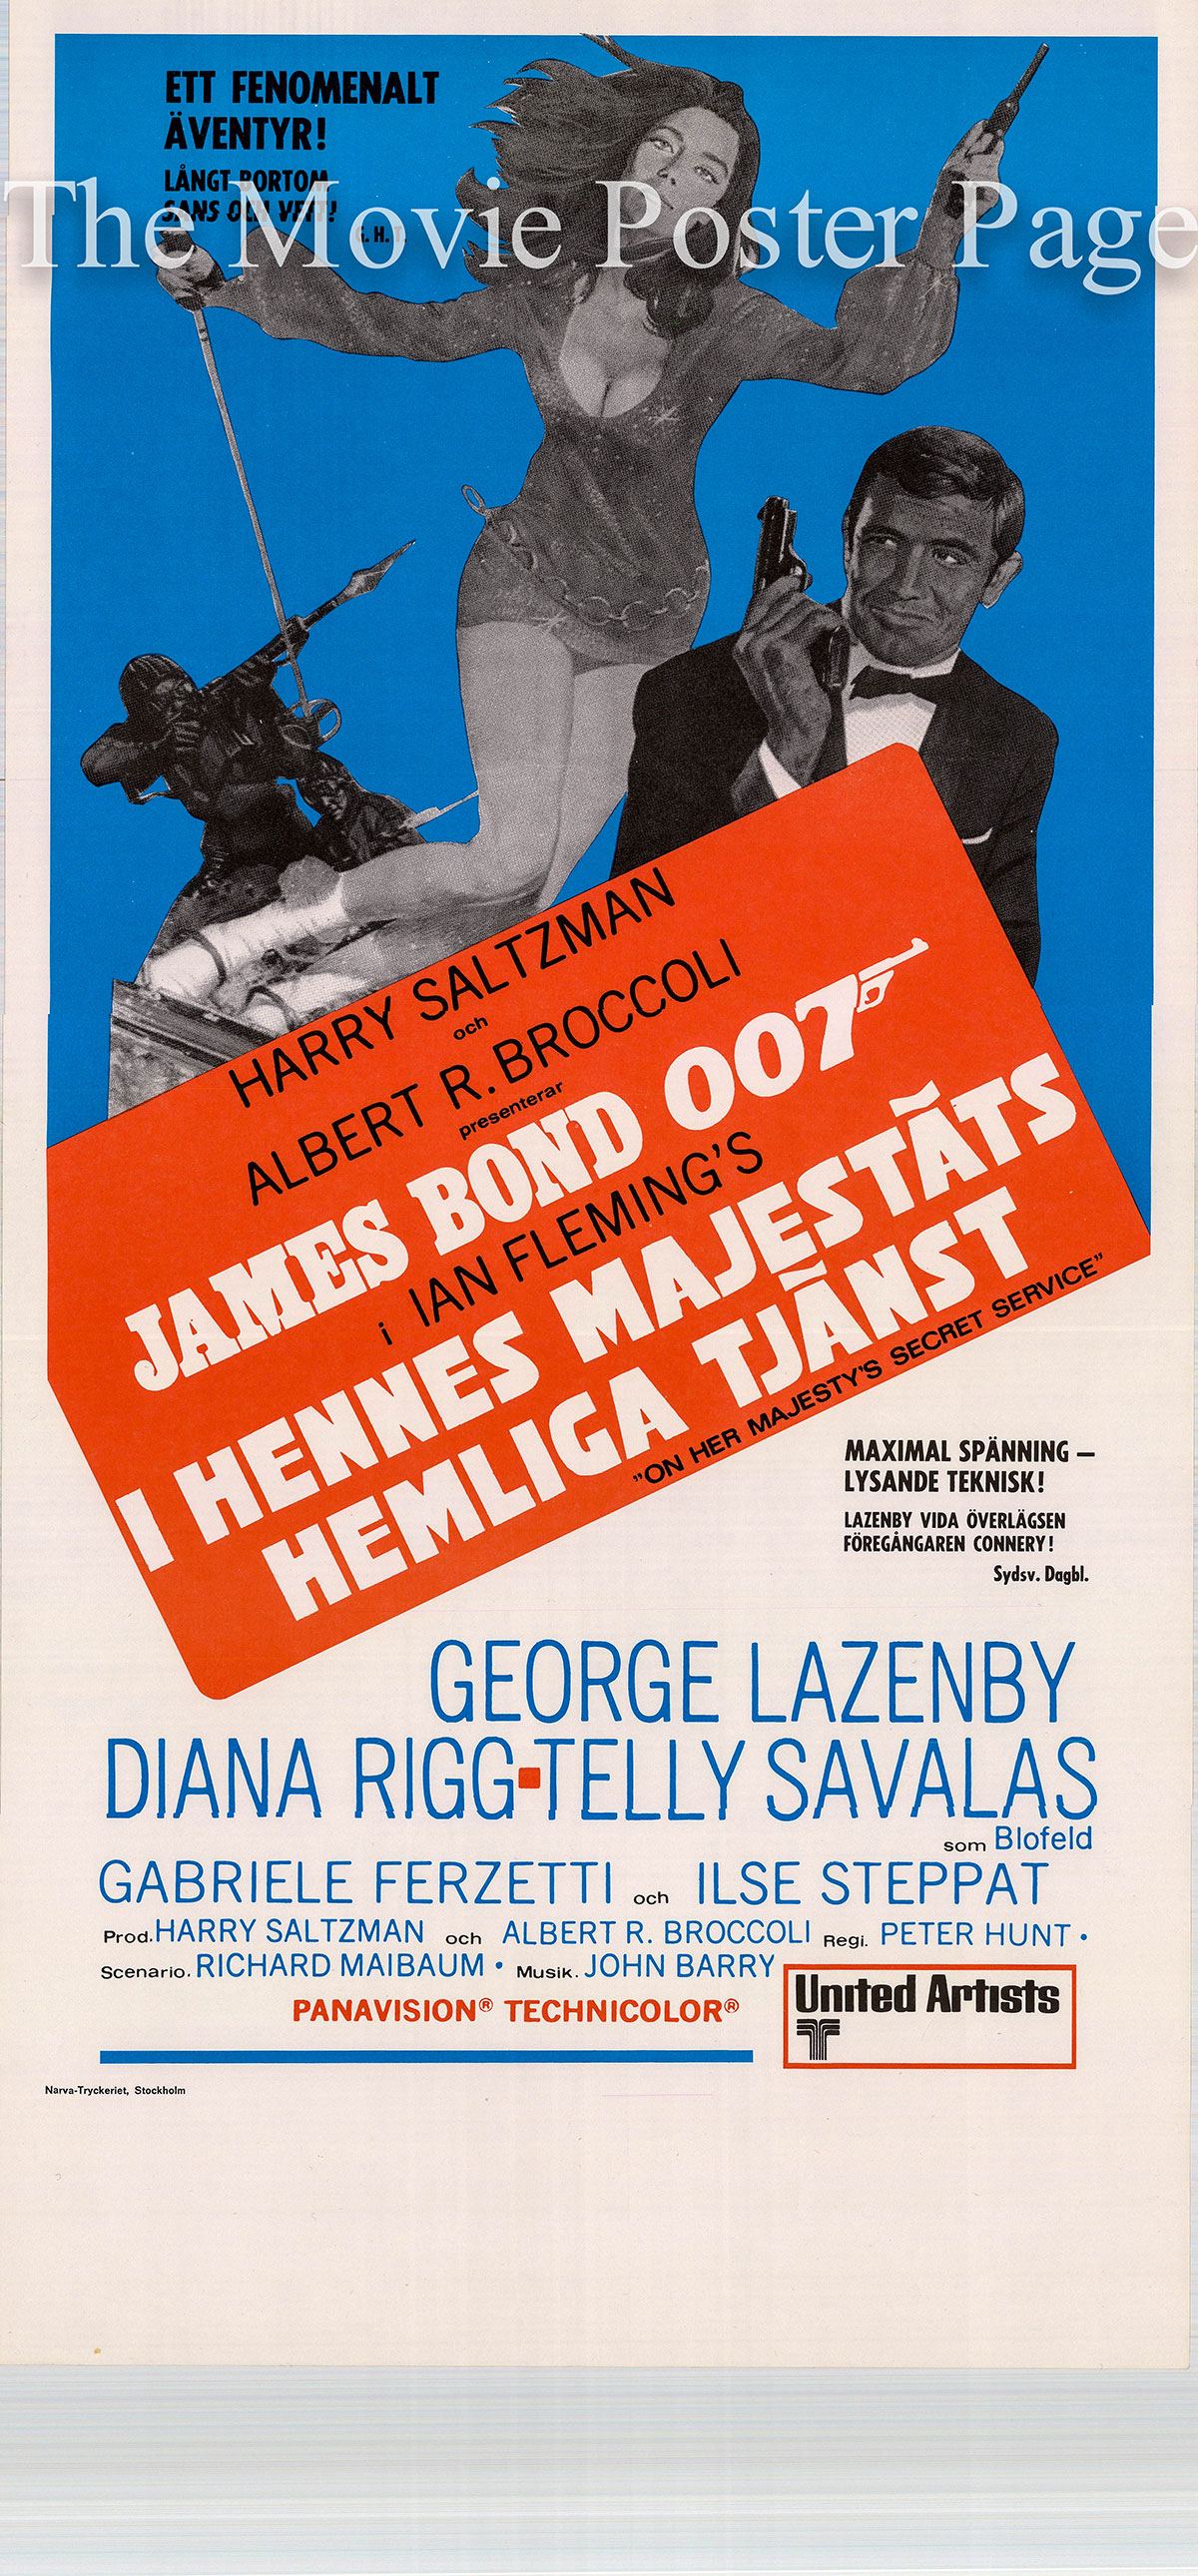 Pictured is a Swedish insert poster for the 1969 Peter R. Hunt film On Her Majesty's Secret Service starring George Lazenby as James Bond.